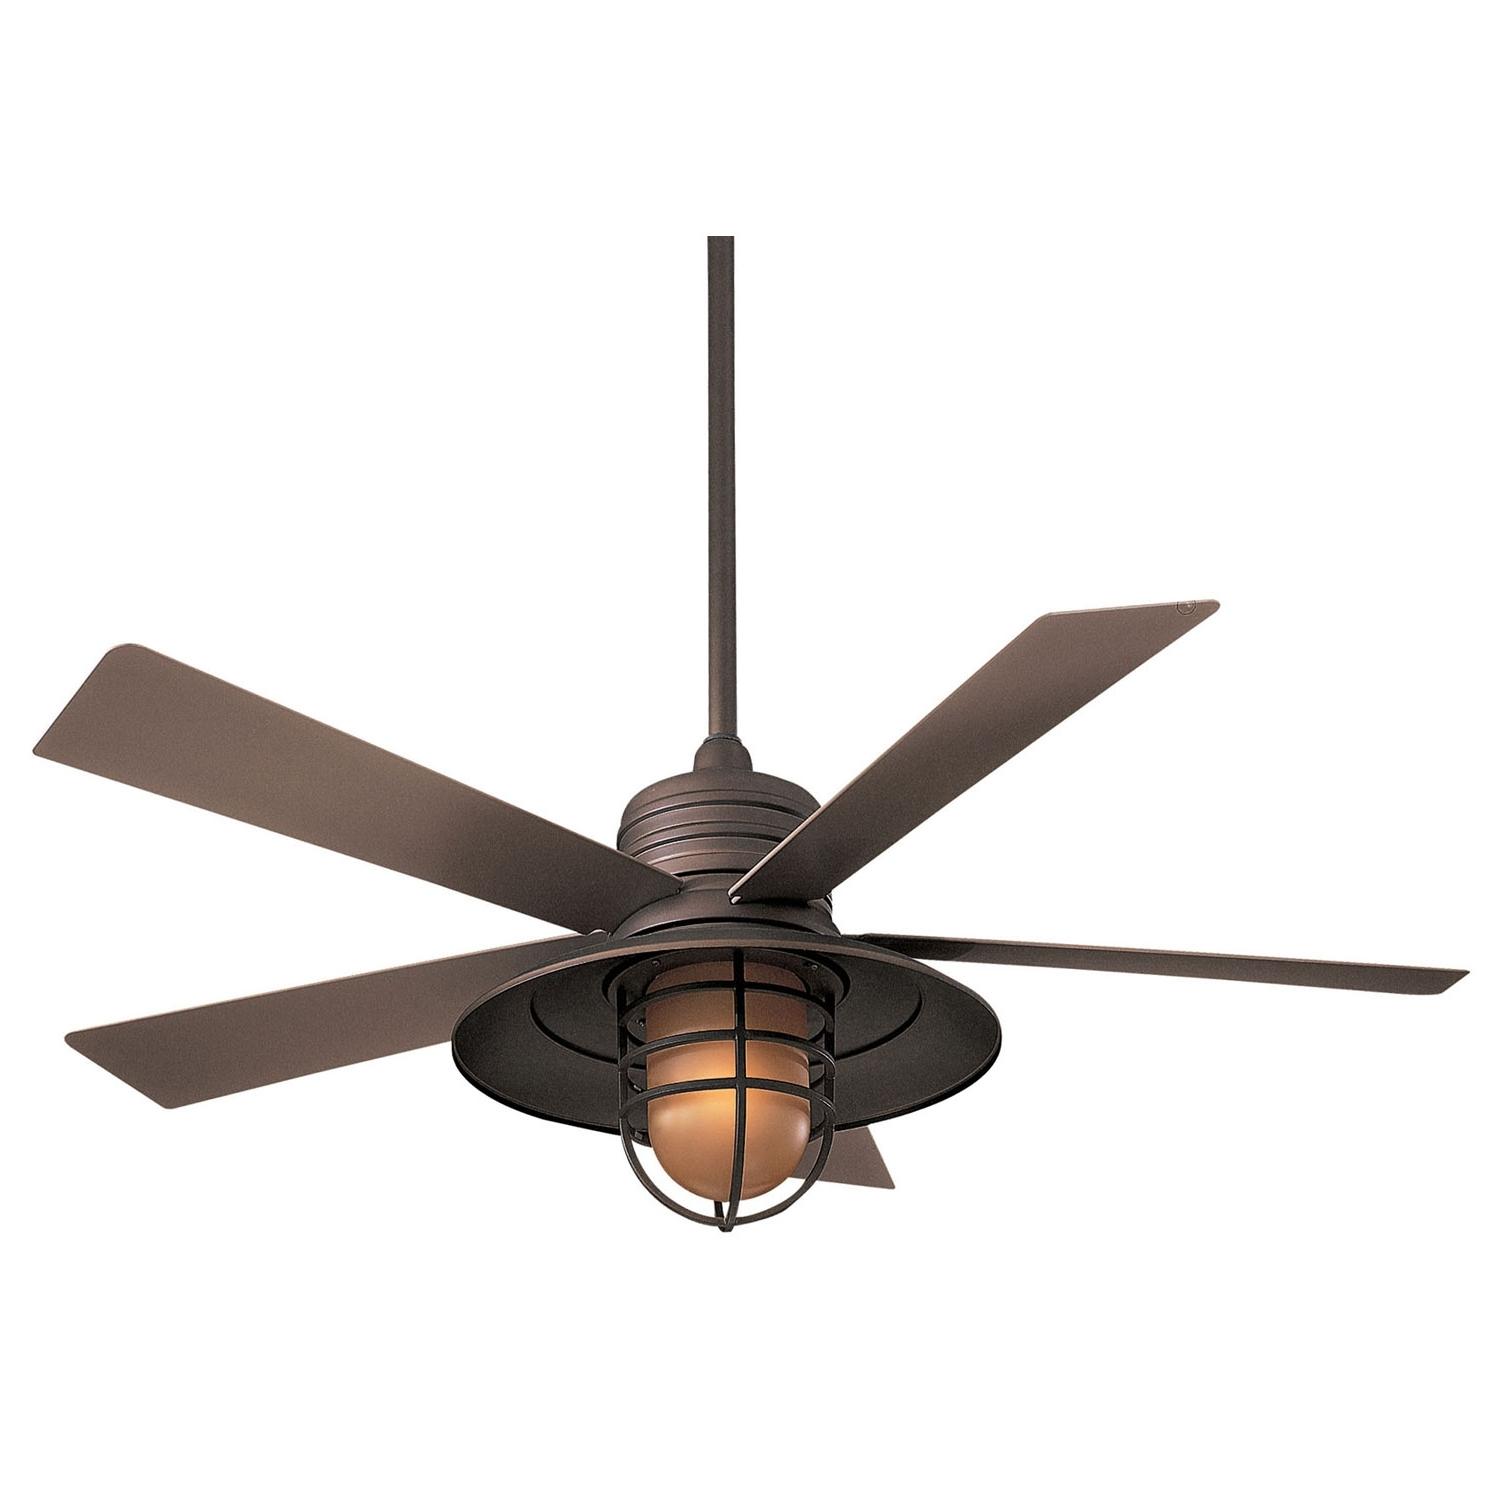 Minka Aire Rainman Oil Rubbed Bronze 54 Inch Blade Indoor/outdoor Regarding Most Popular Outdoor Ceiling Fans For Wet Locations (View 16 of 20)